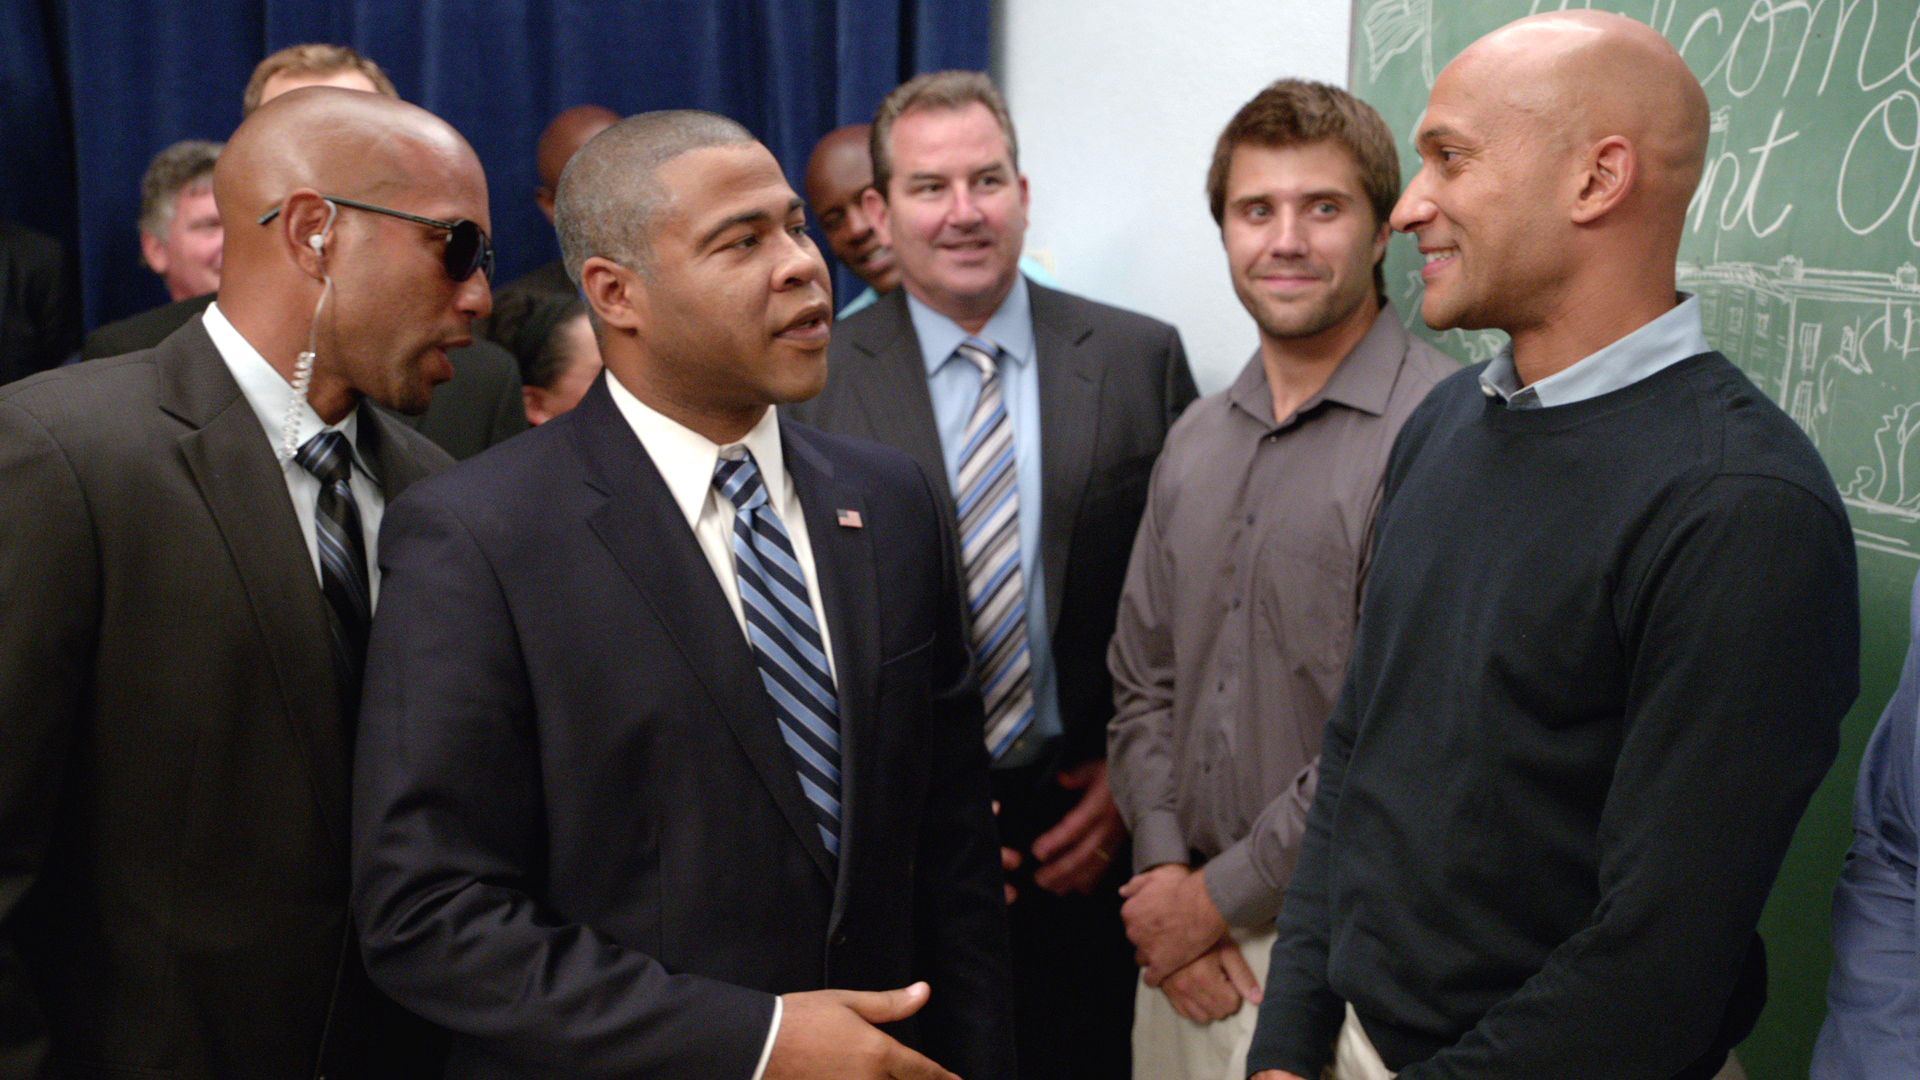 Obama Meet Greet Key And Peele Video Clip Comedy Central